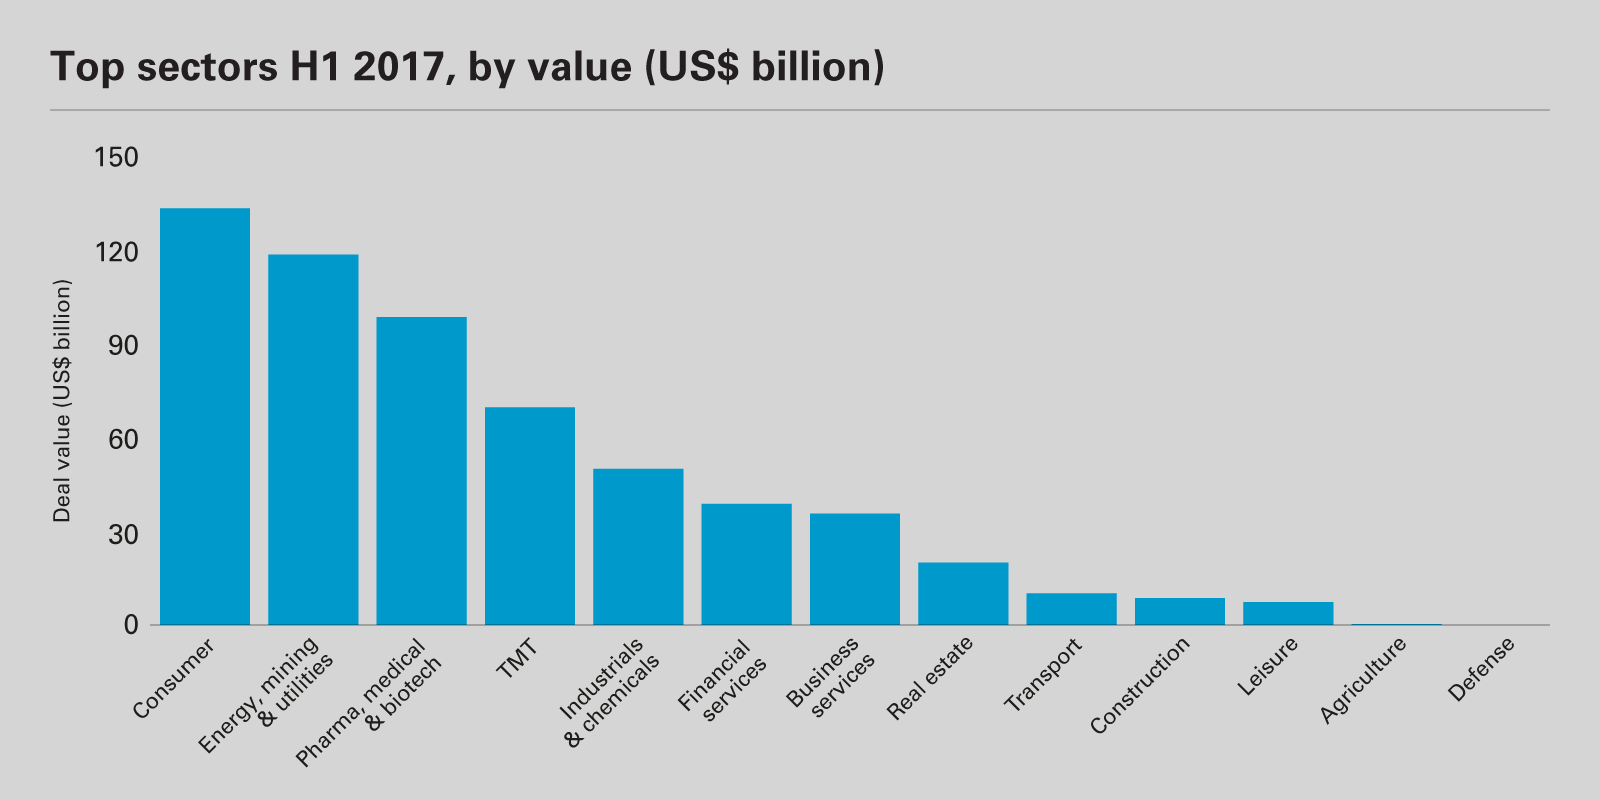 Top sectors H1 2017, by value